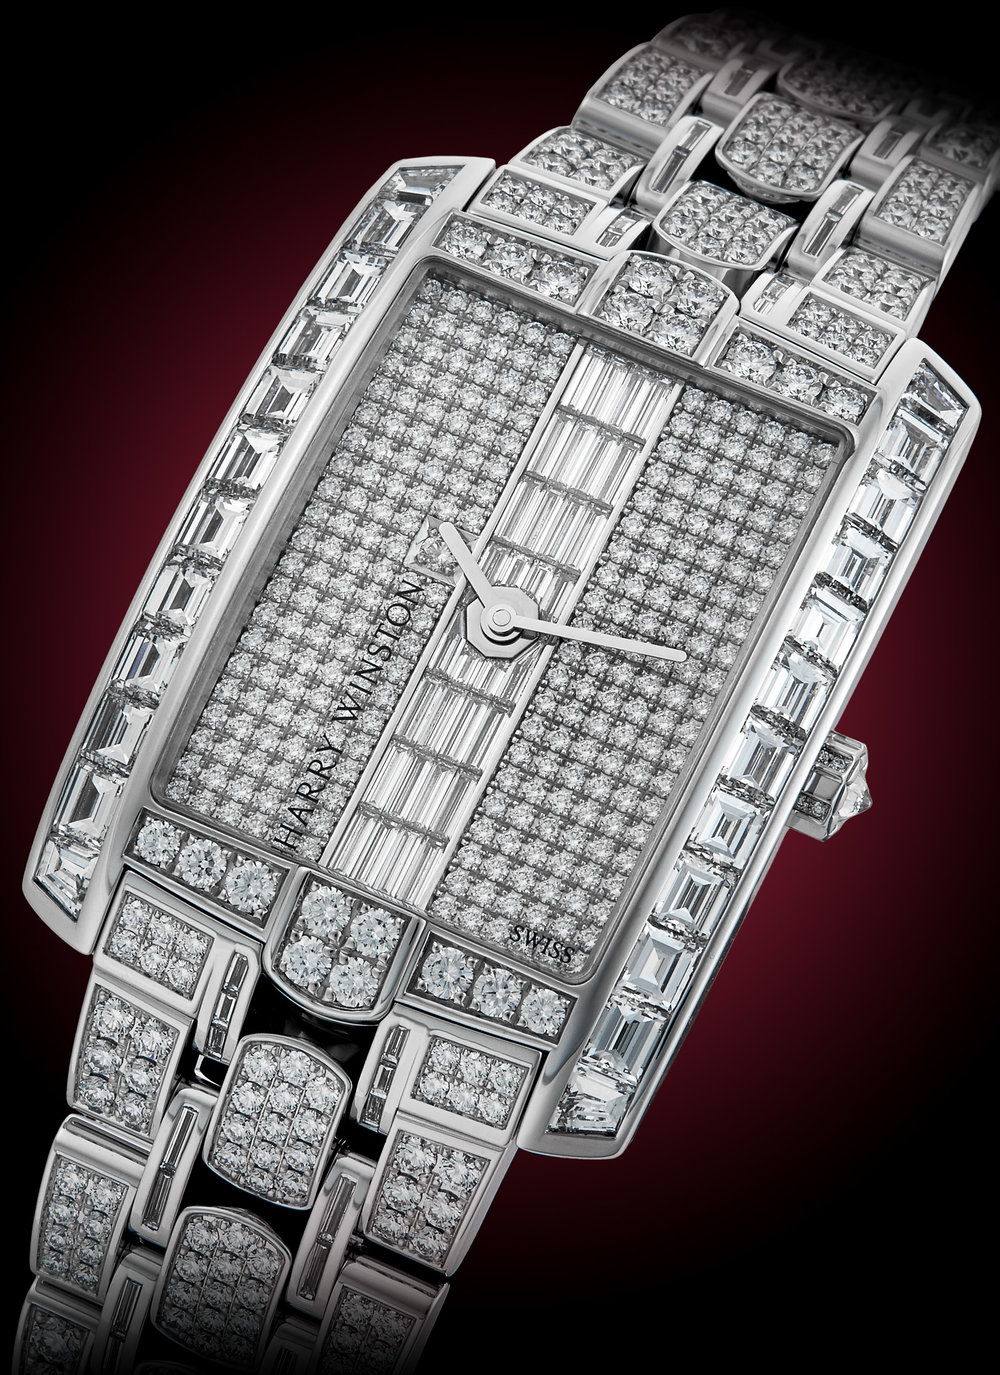 Harry_Winston_Diamond_Watch_Jewelry_adAvenue C_Miami_Fort Lauderdale _Commercial_Jewelry Photographer_Franklin_Castillo.jpg